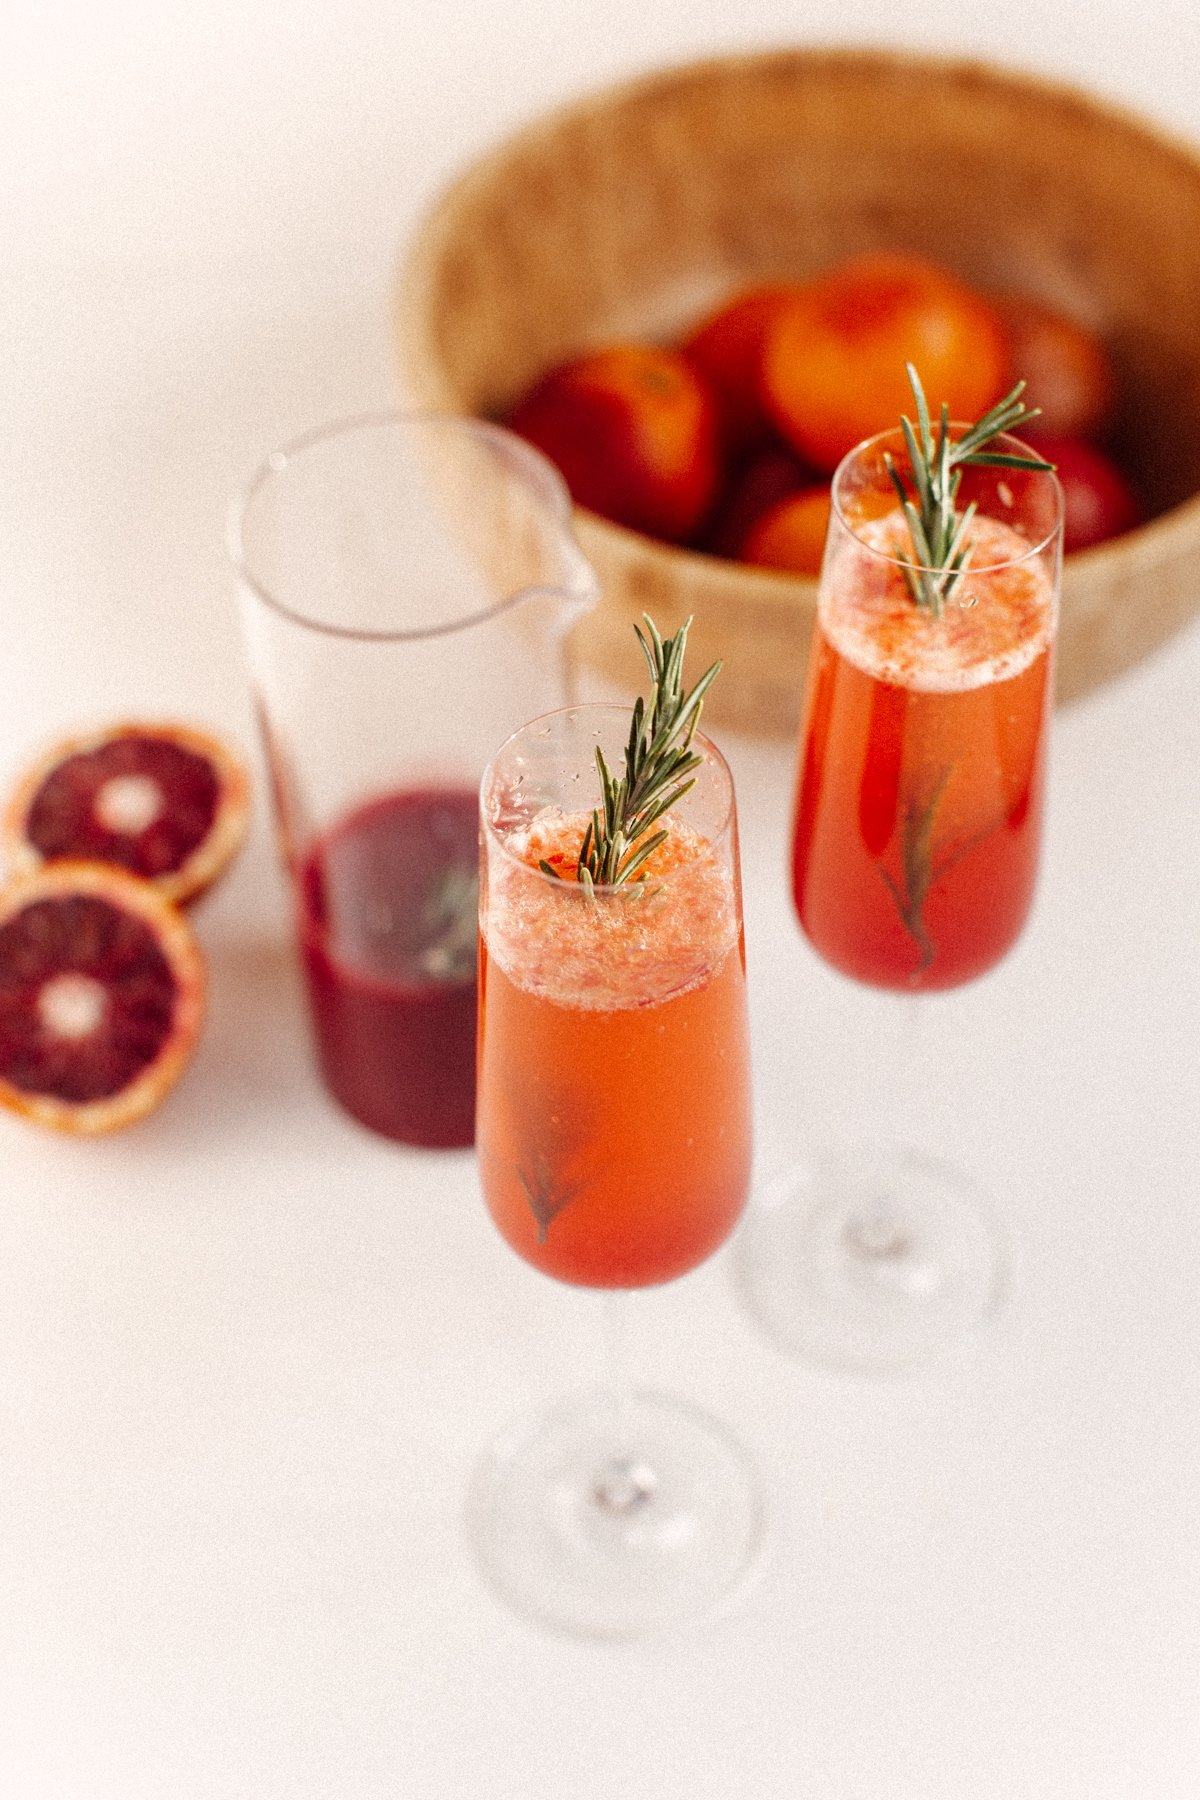 homemade blood orange mimosas